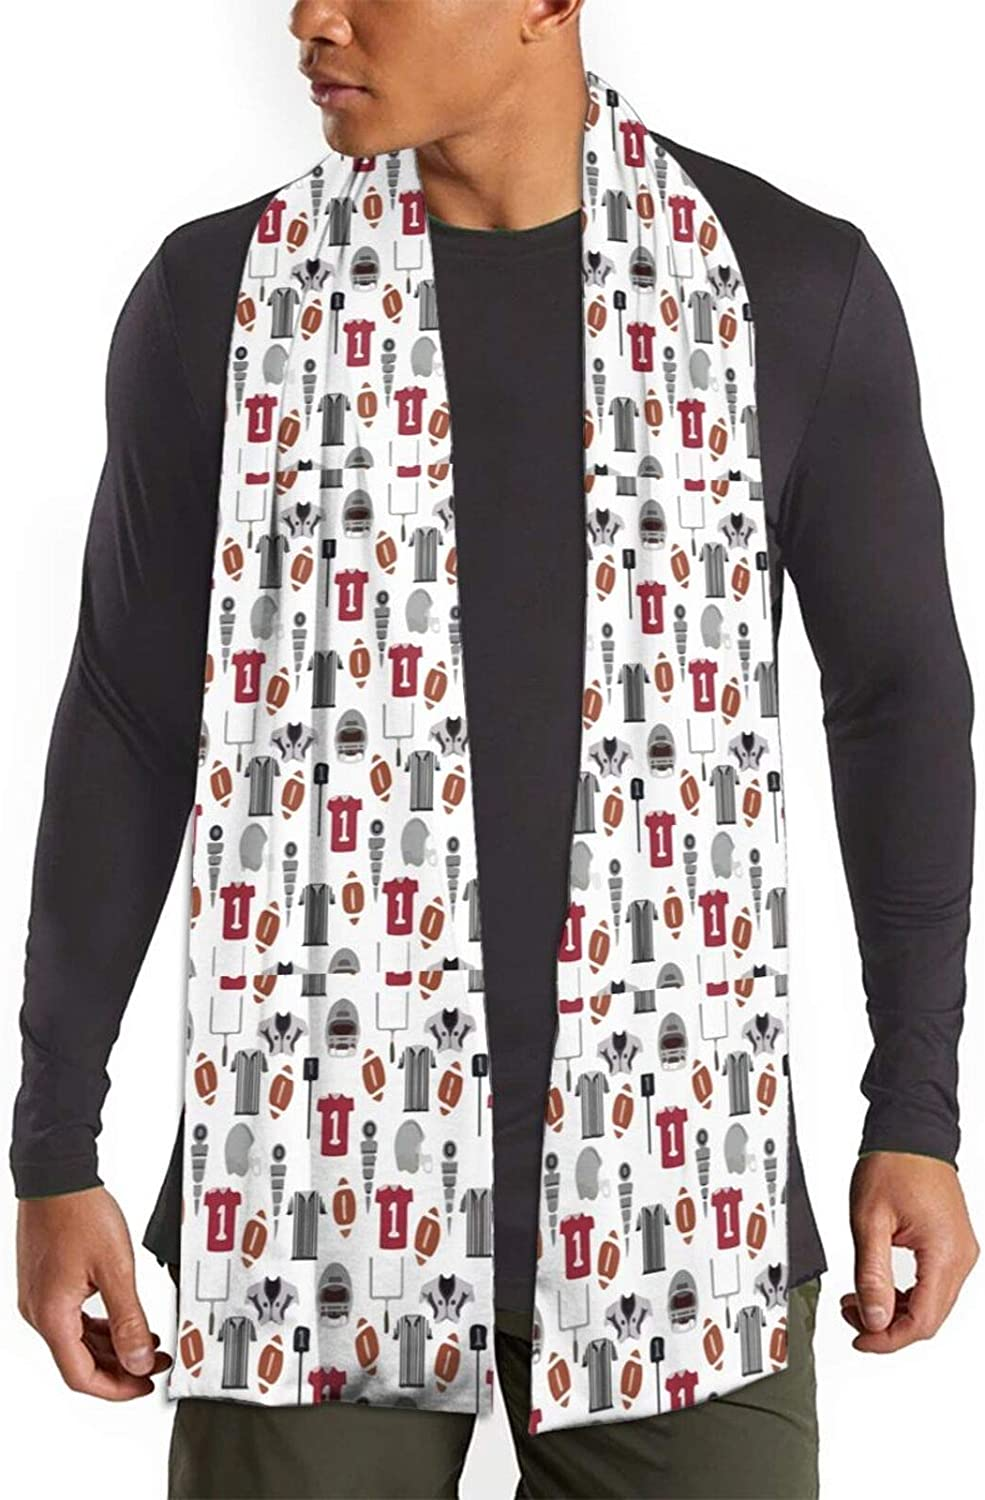 Womens Winter Scarf Football College Sports Fan Wraps Warm Pashmina Shawls Gift Reversible Soft For Girls